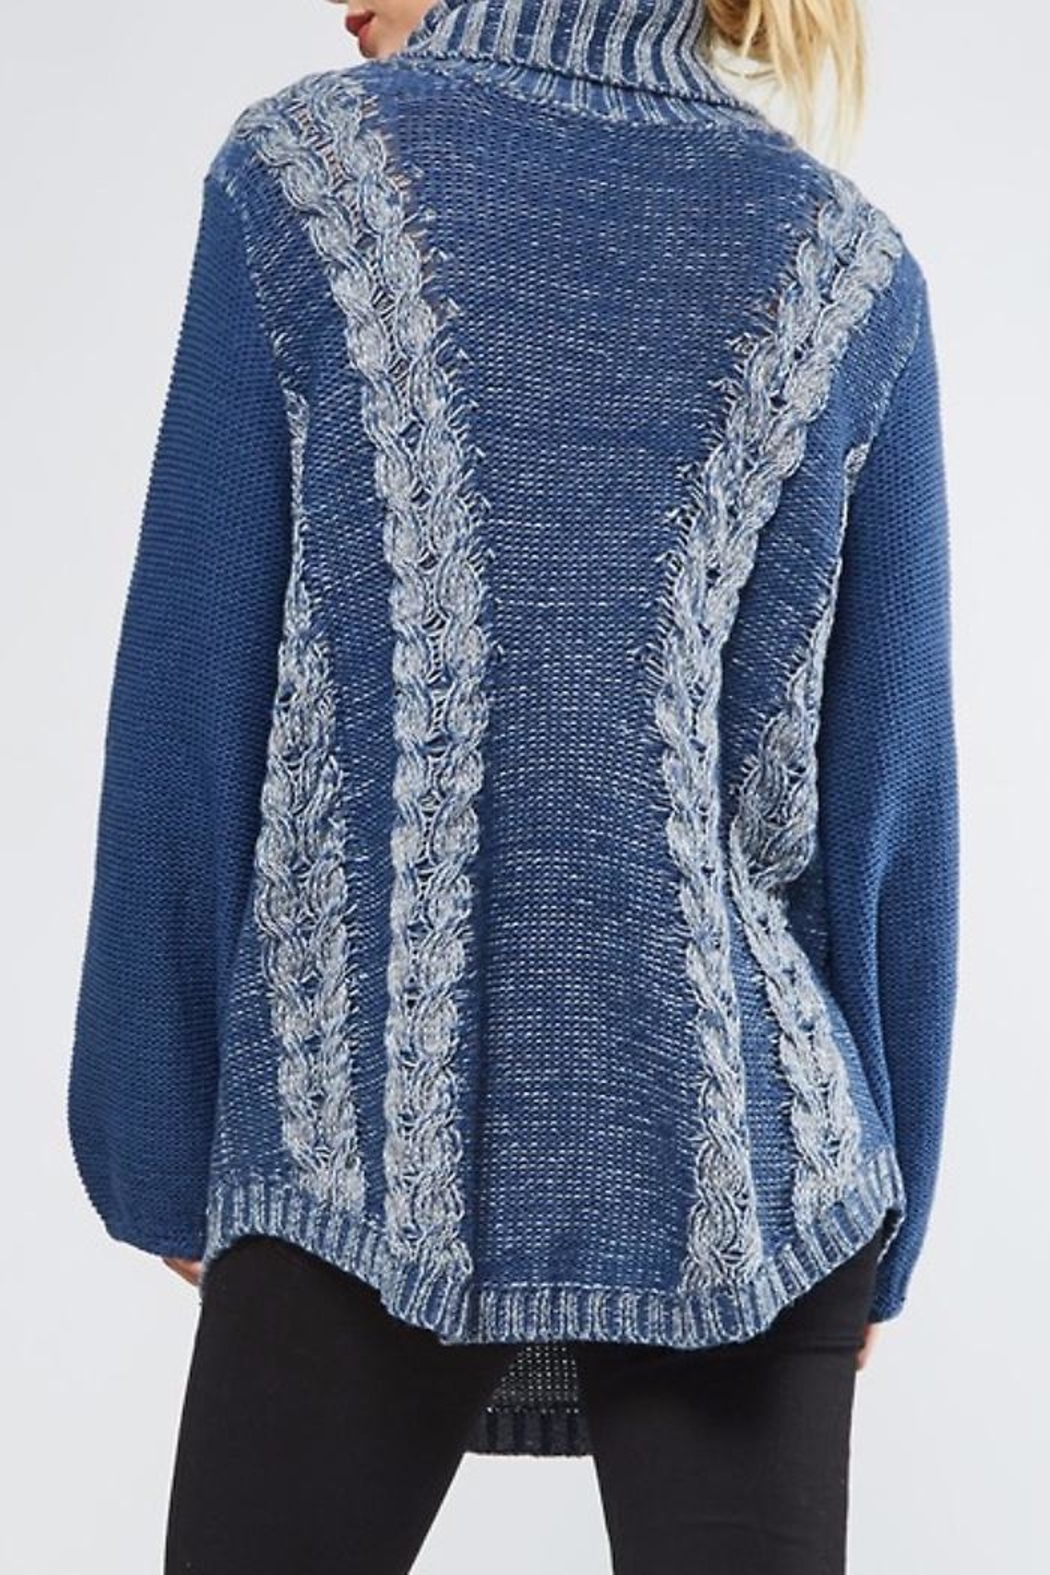 People Outfitter Heartened Blue Sweater - Side Cropped Image